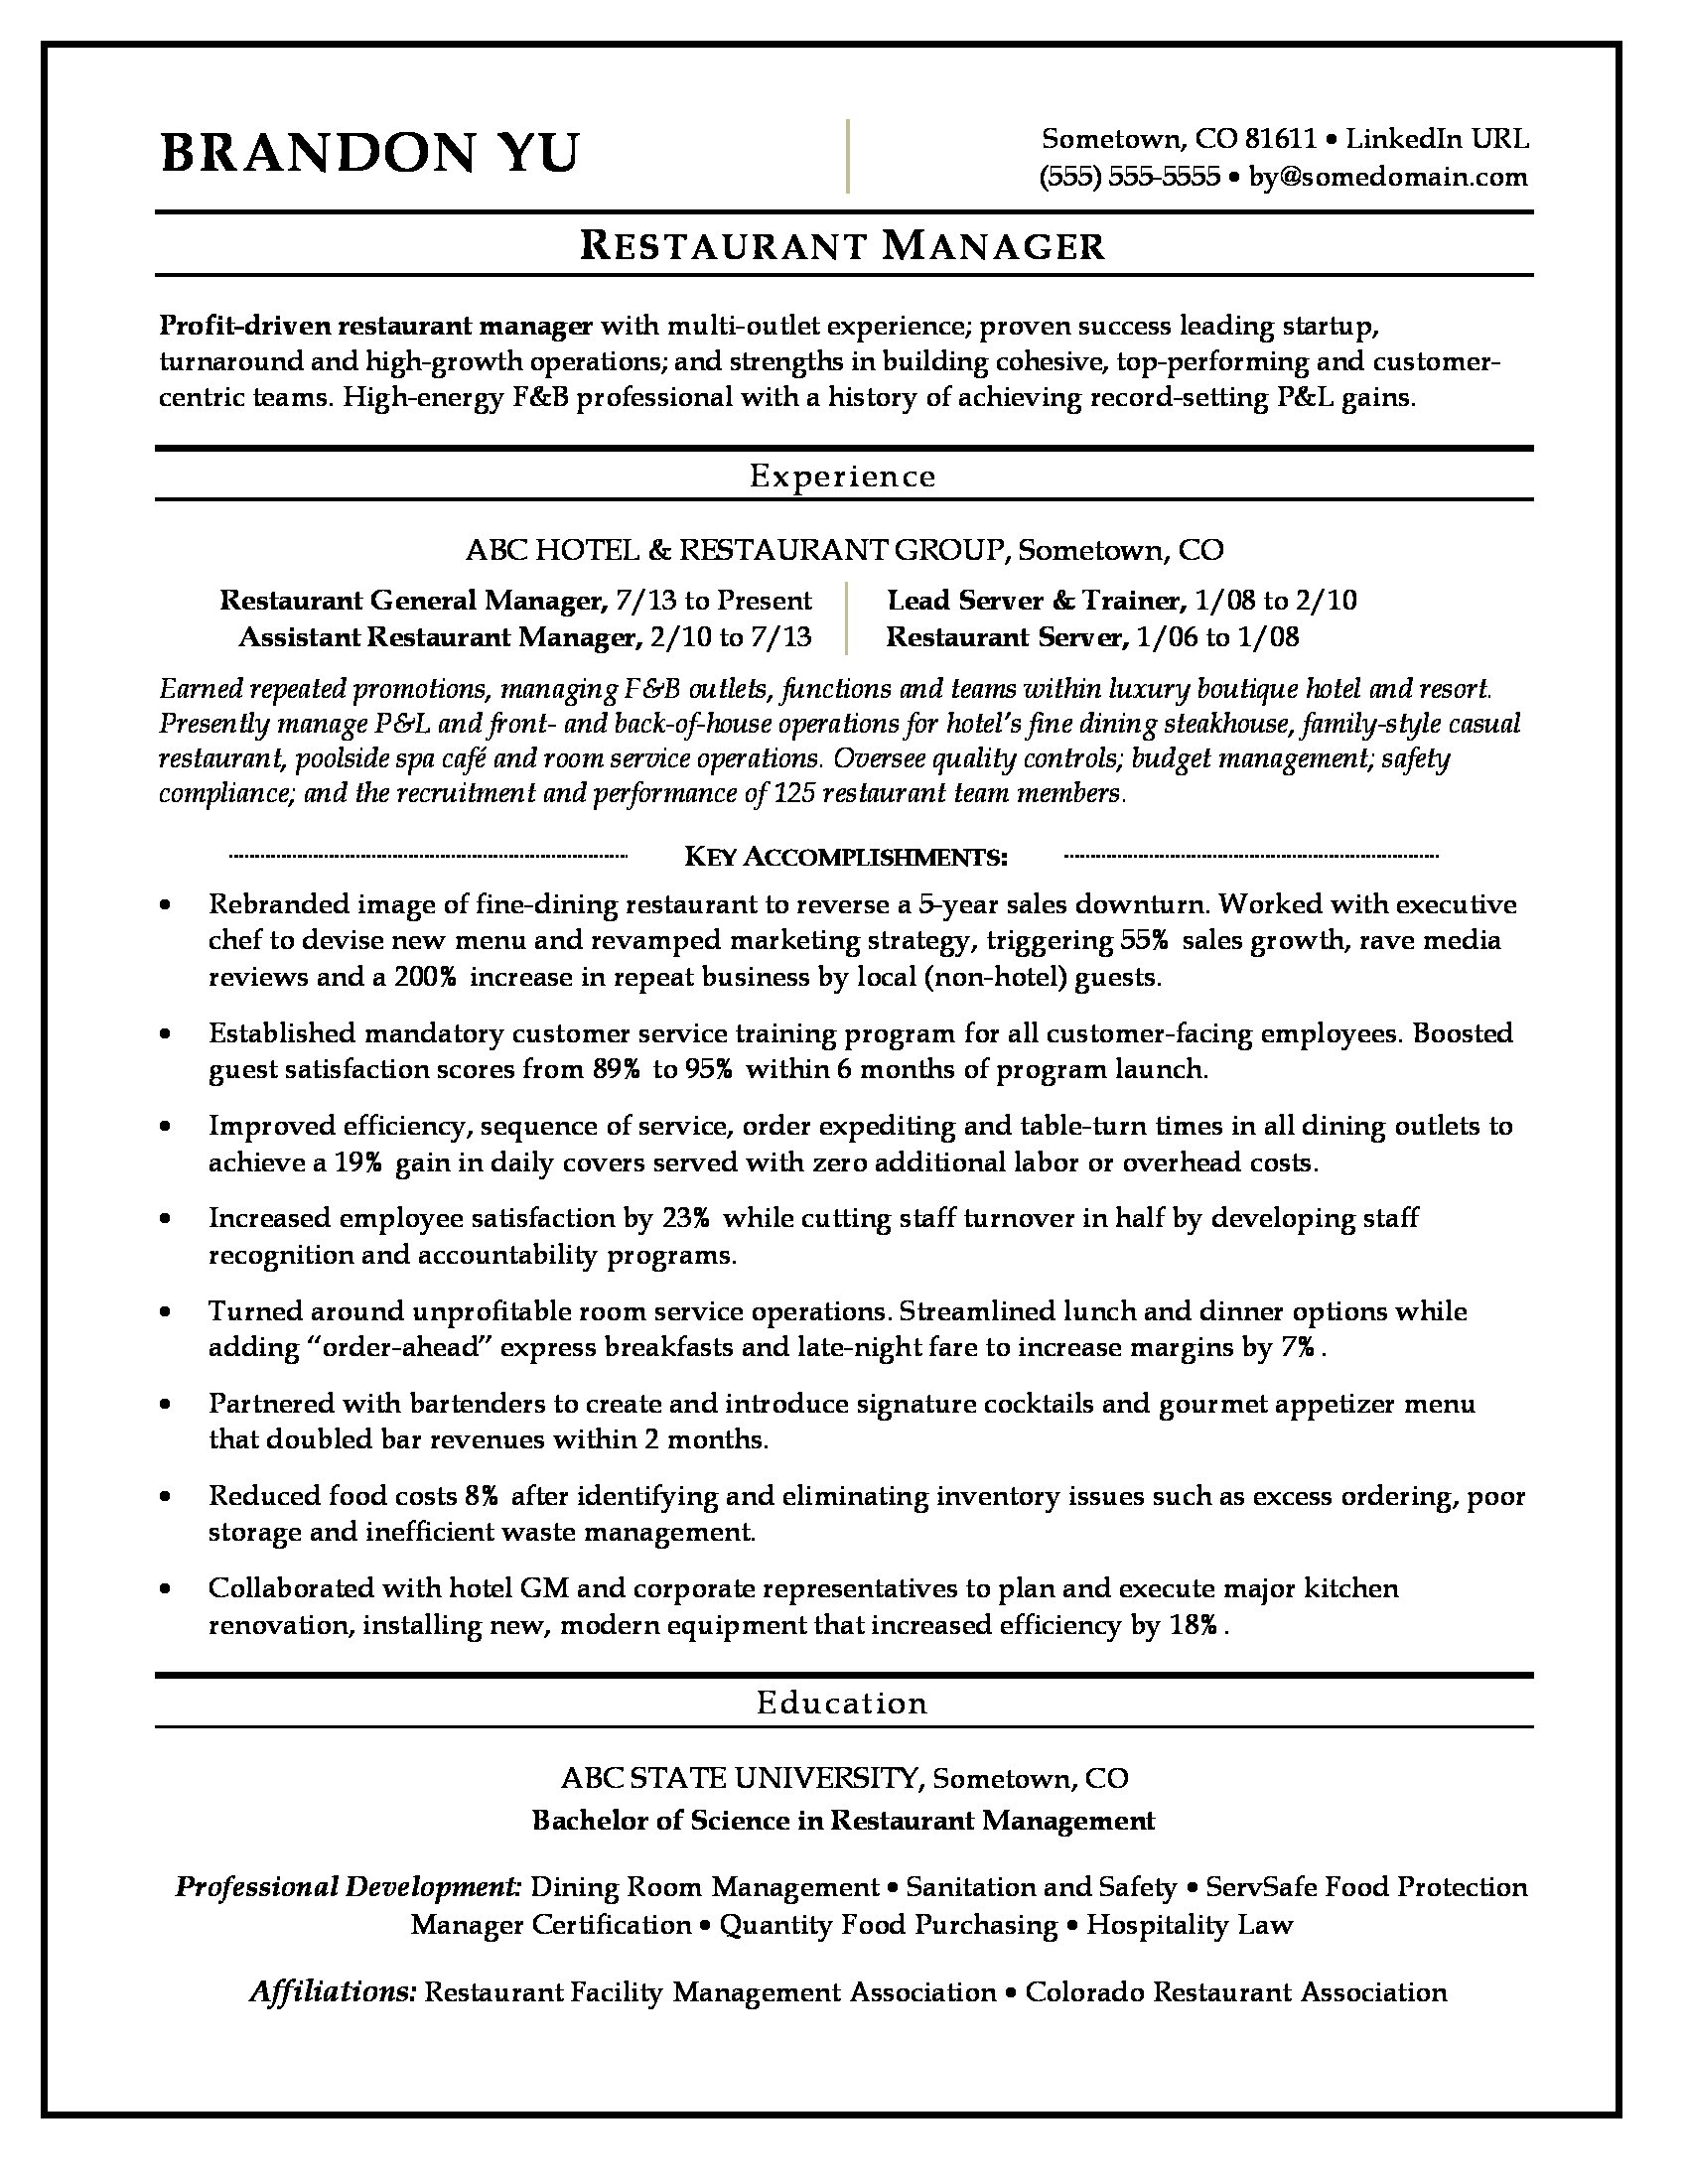 sample resume for a restaurant manager - Hospitality Resume